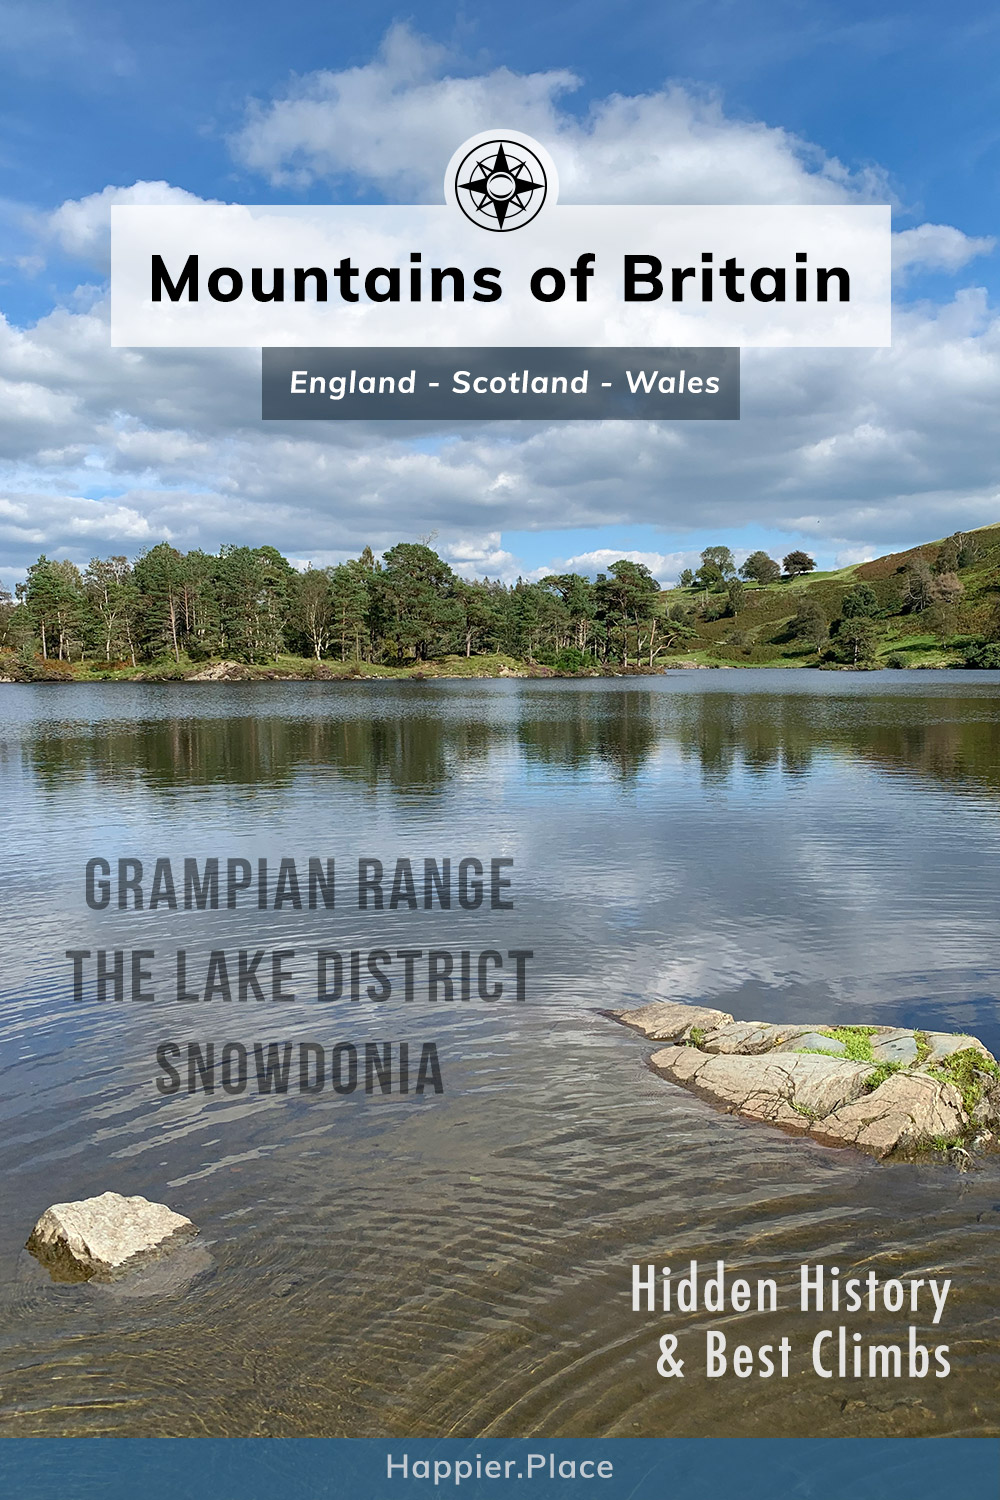 The Mountains Of Britain: Best Climbs and Hidden History